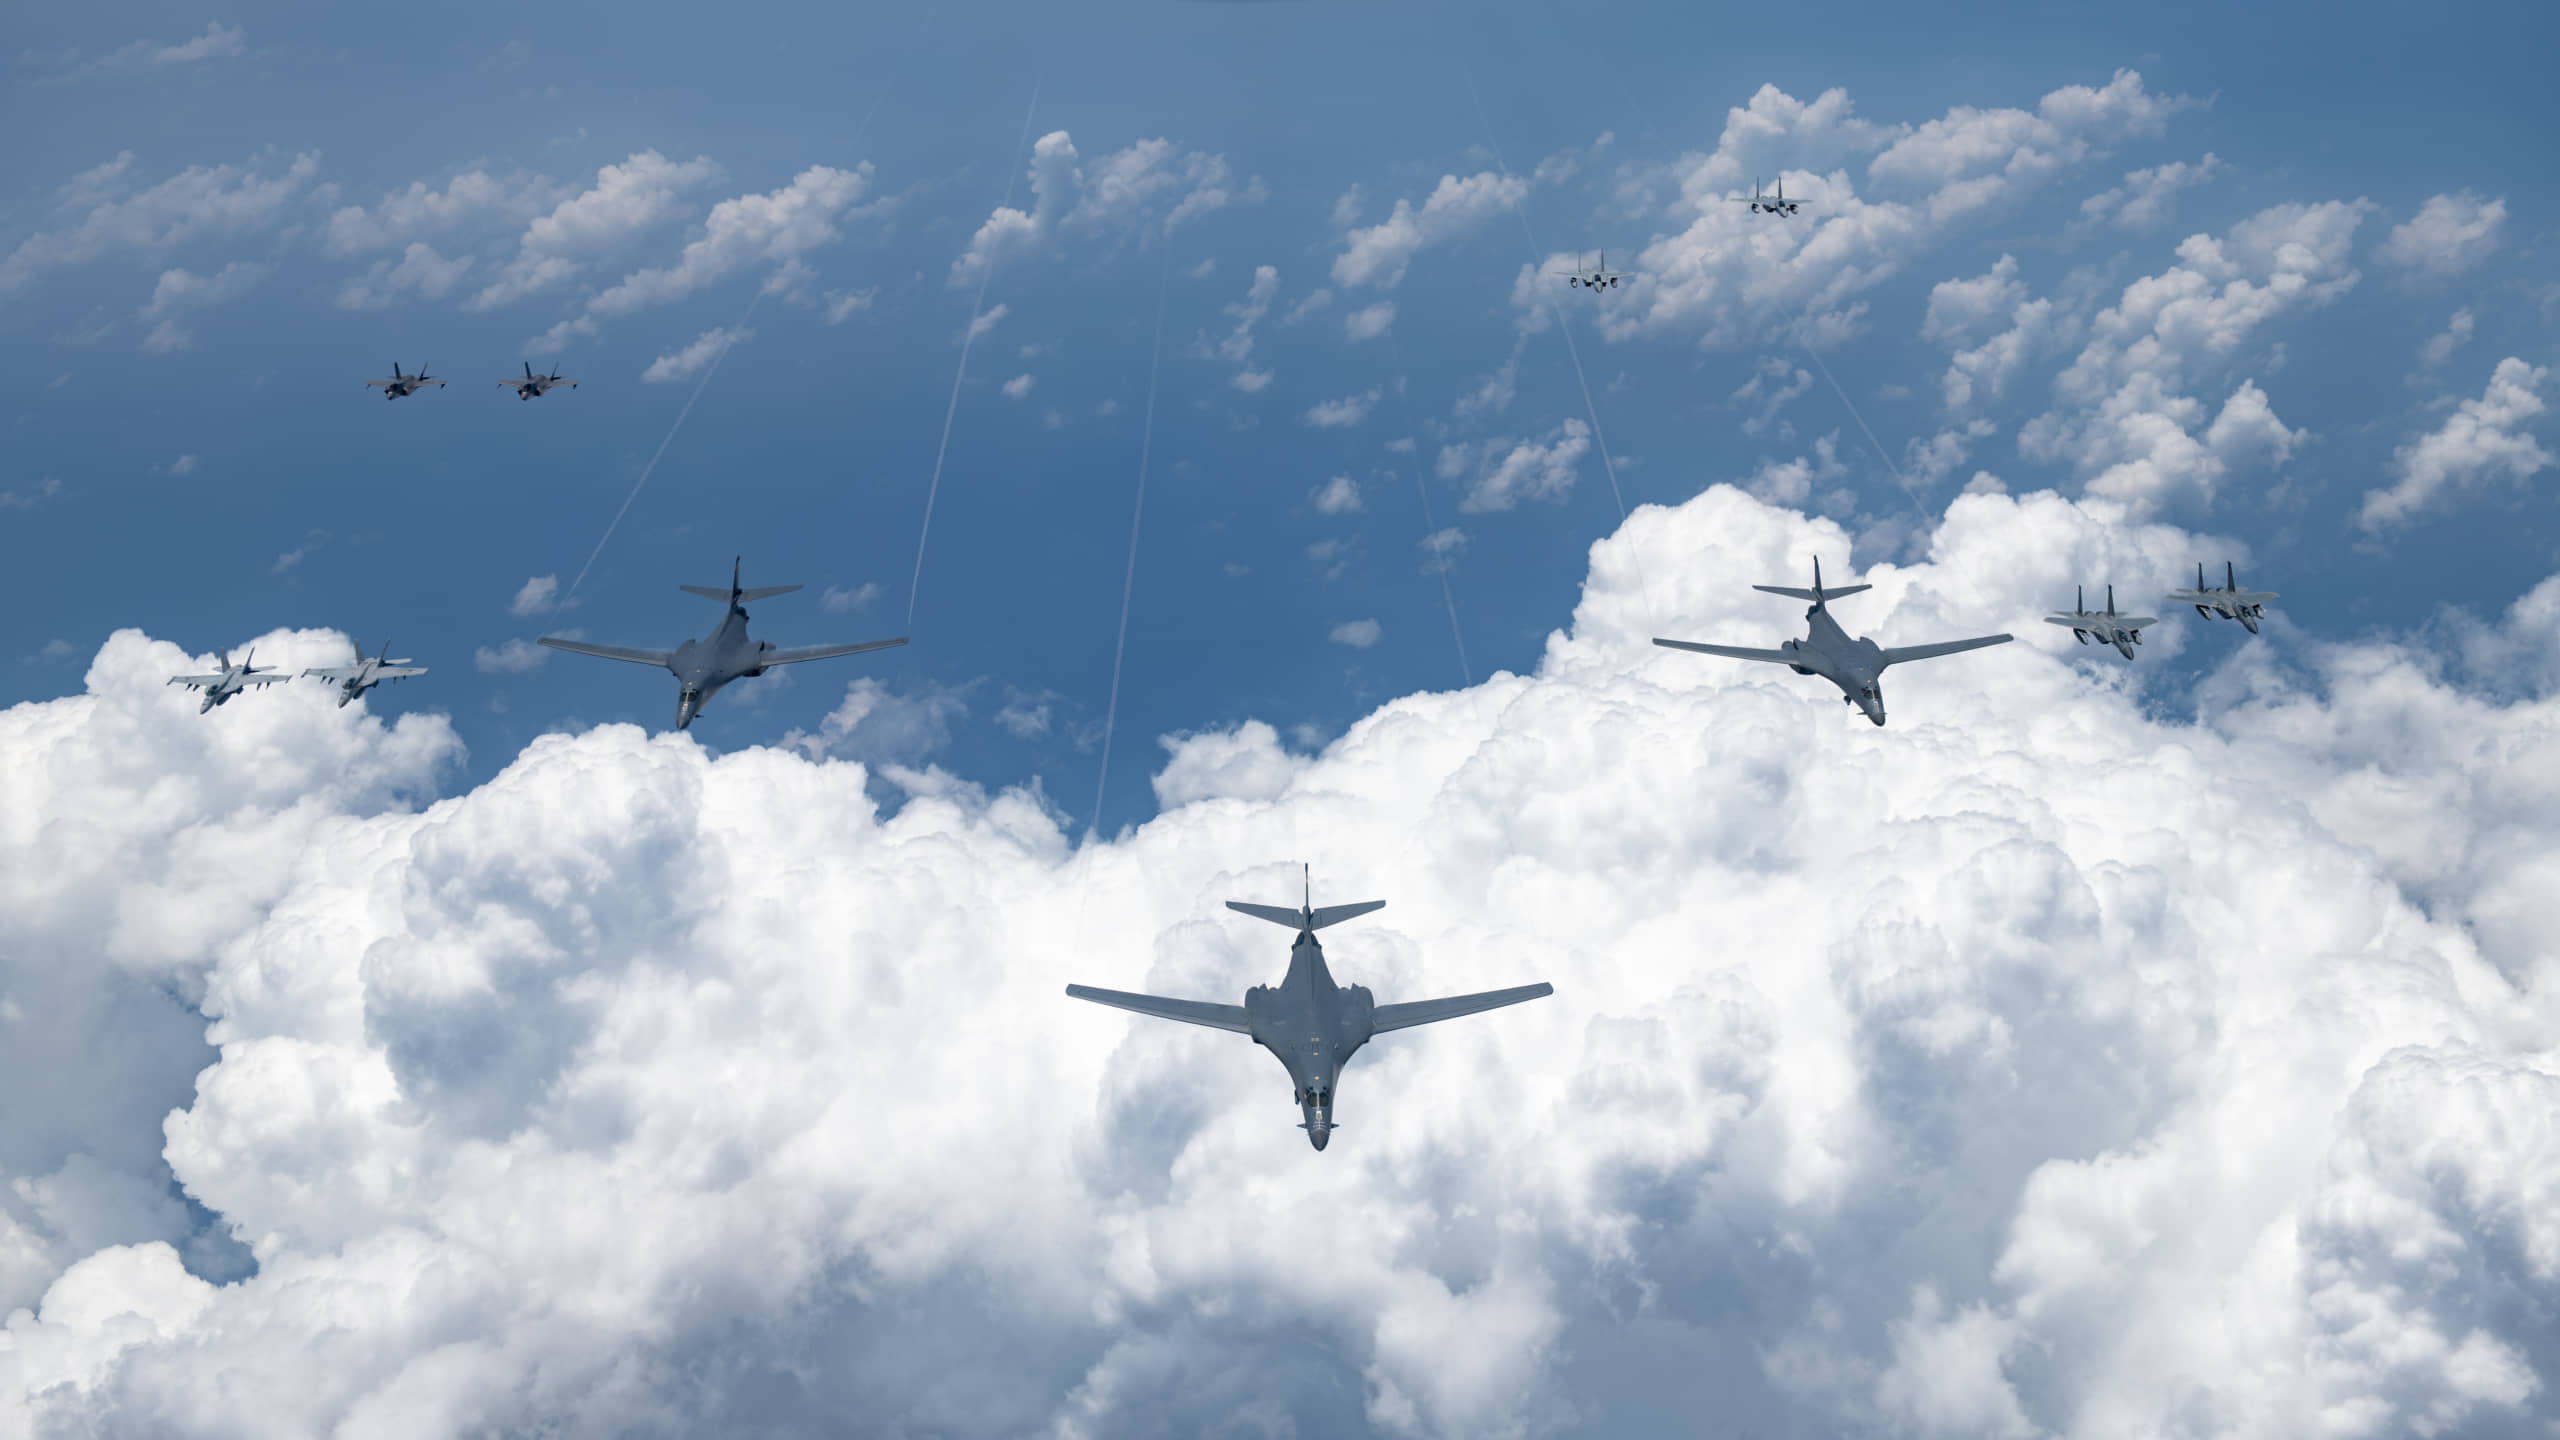 U.S. Air Force, Navy, Marine Corps and Air Self-Defense Force aircraft conduct a large-scale joint and bilateral integration training exercise on Tuesday in airspace near Japan. | U.S. AIR FORCE